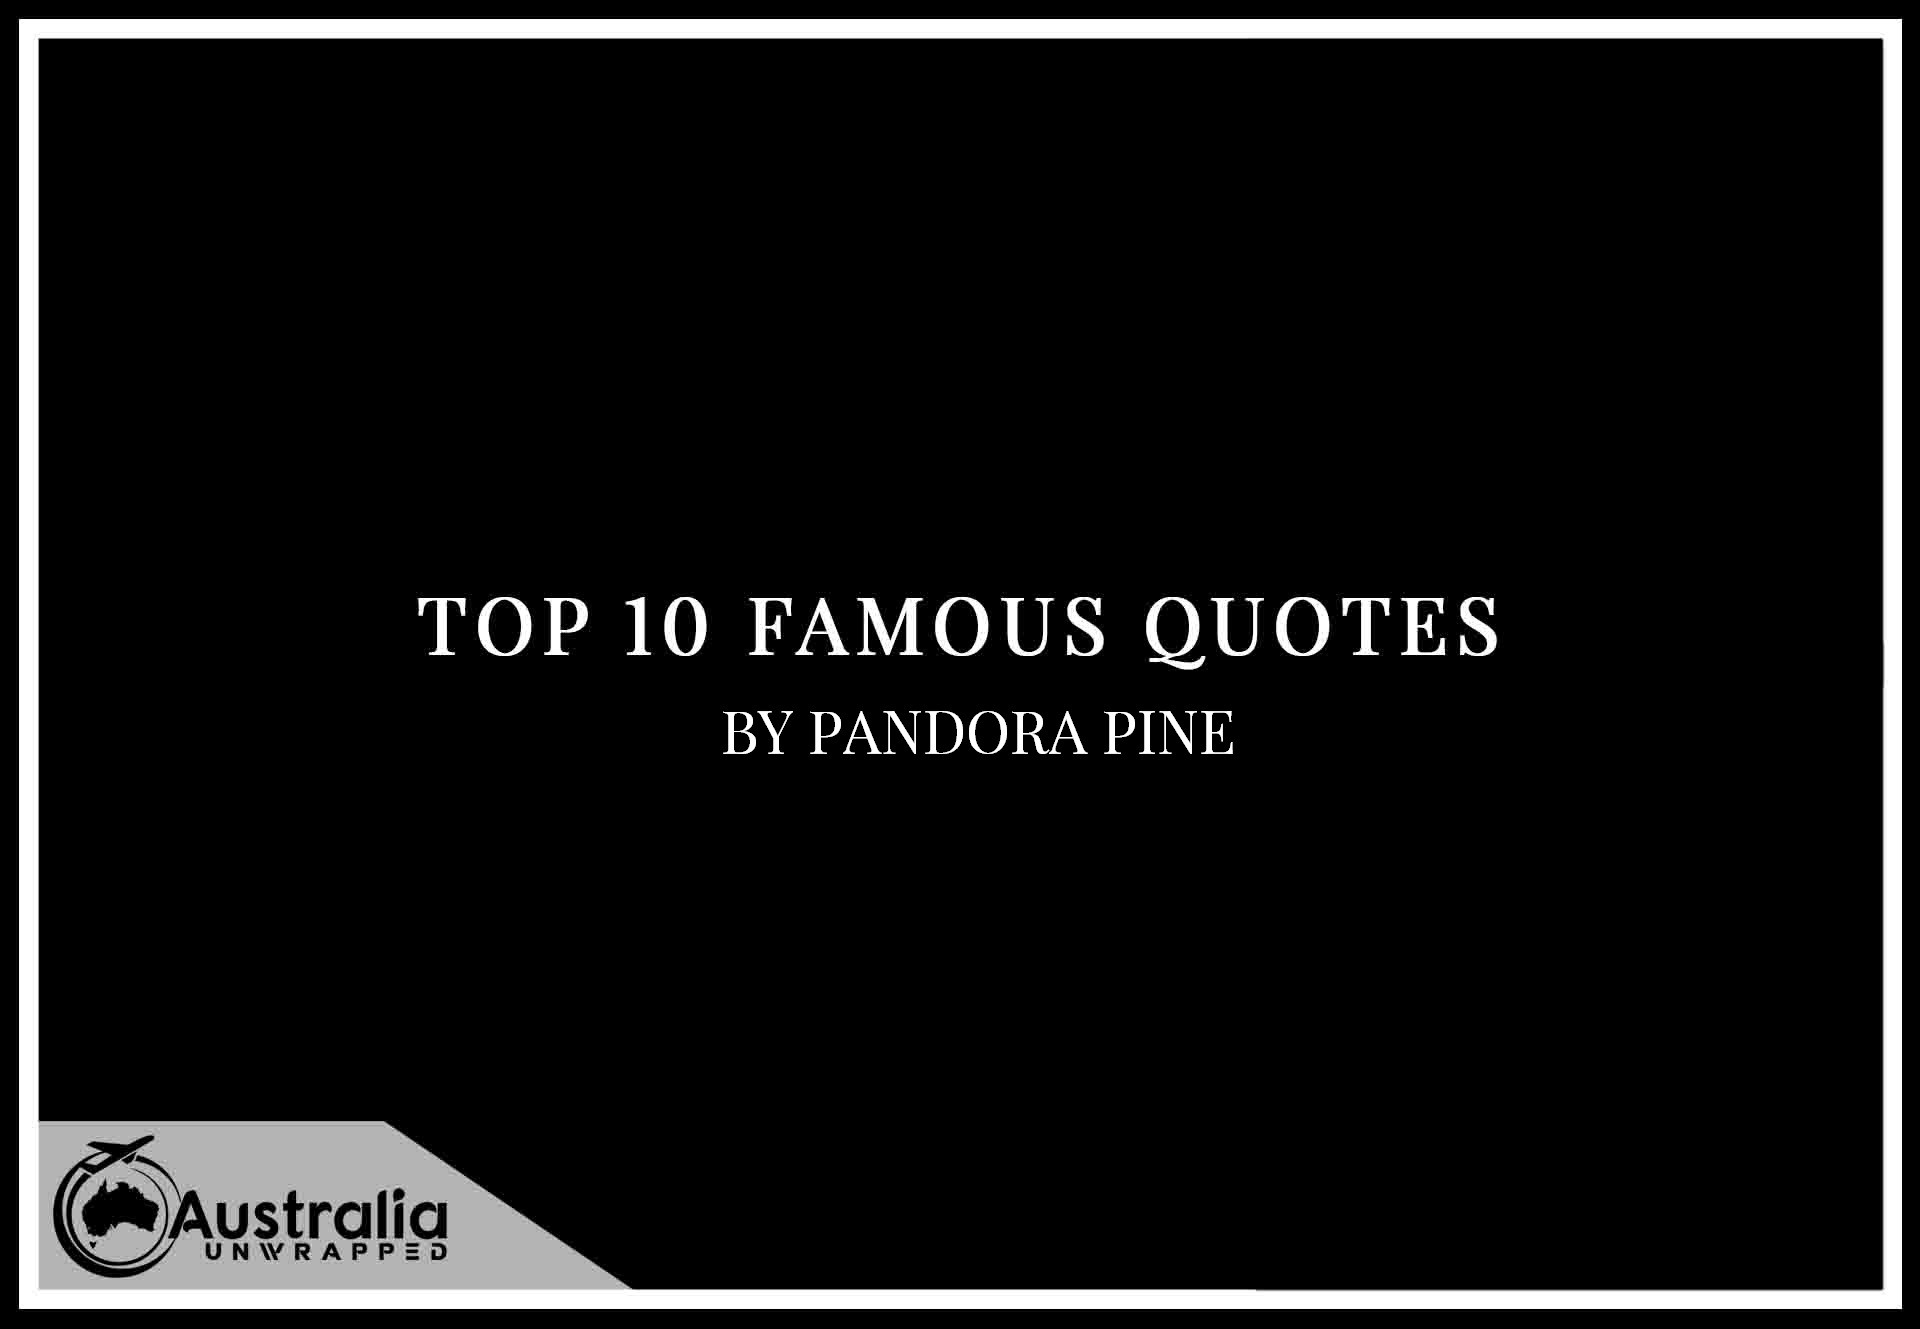 Top 10 Famous Quotes by Author Pandora Pine